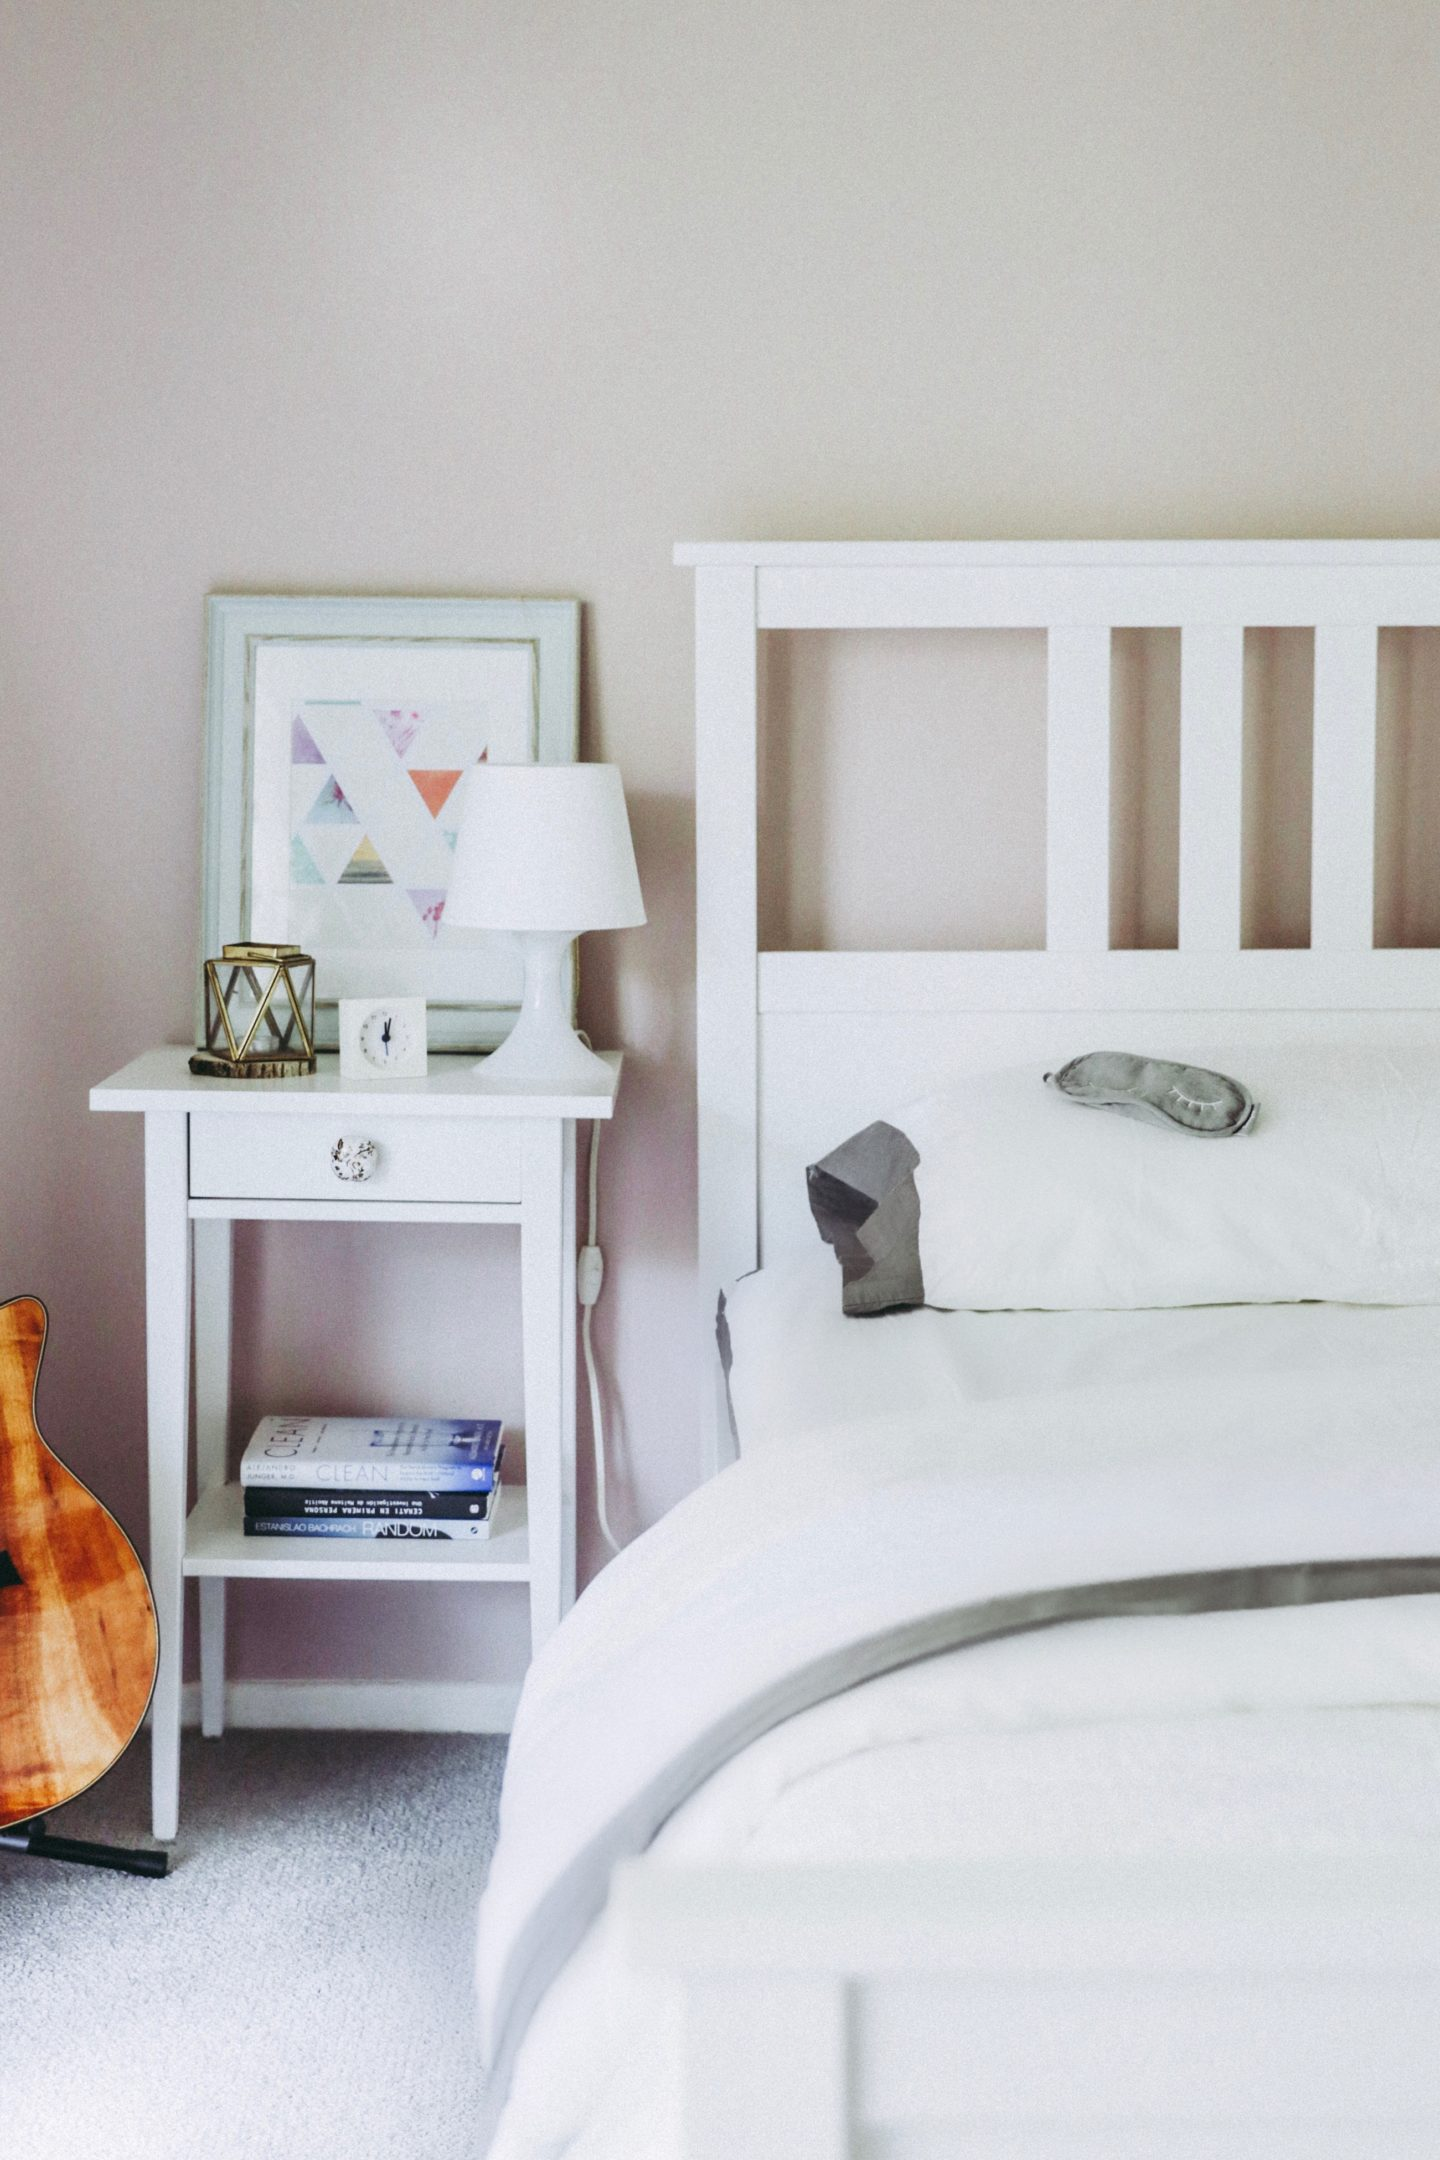 The Casual Free: 4 Ways To Get More Sleep With Kids - Bed Nightstand